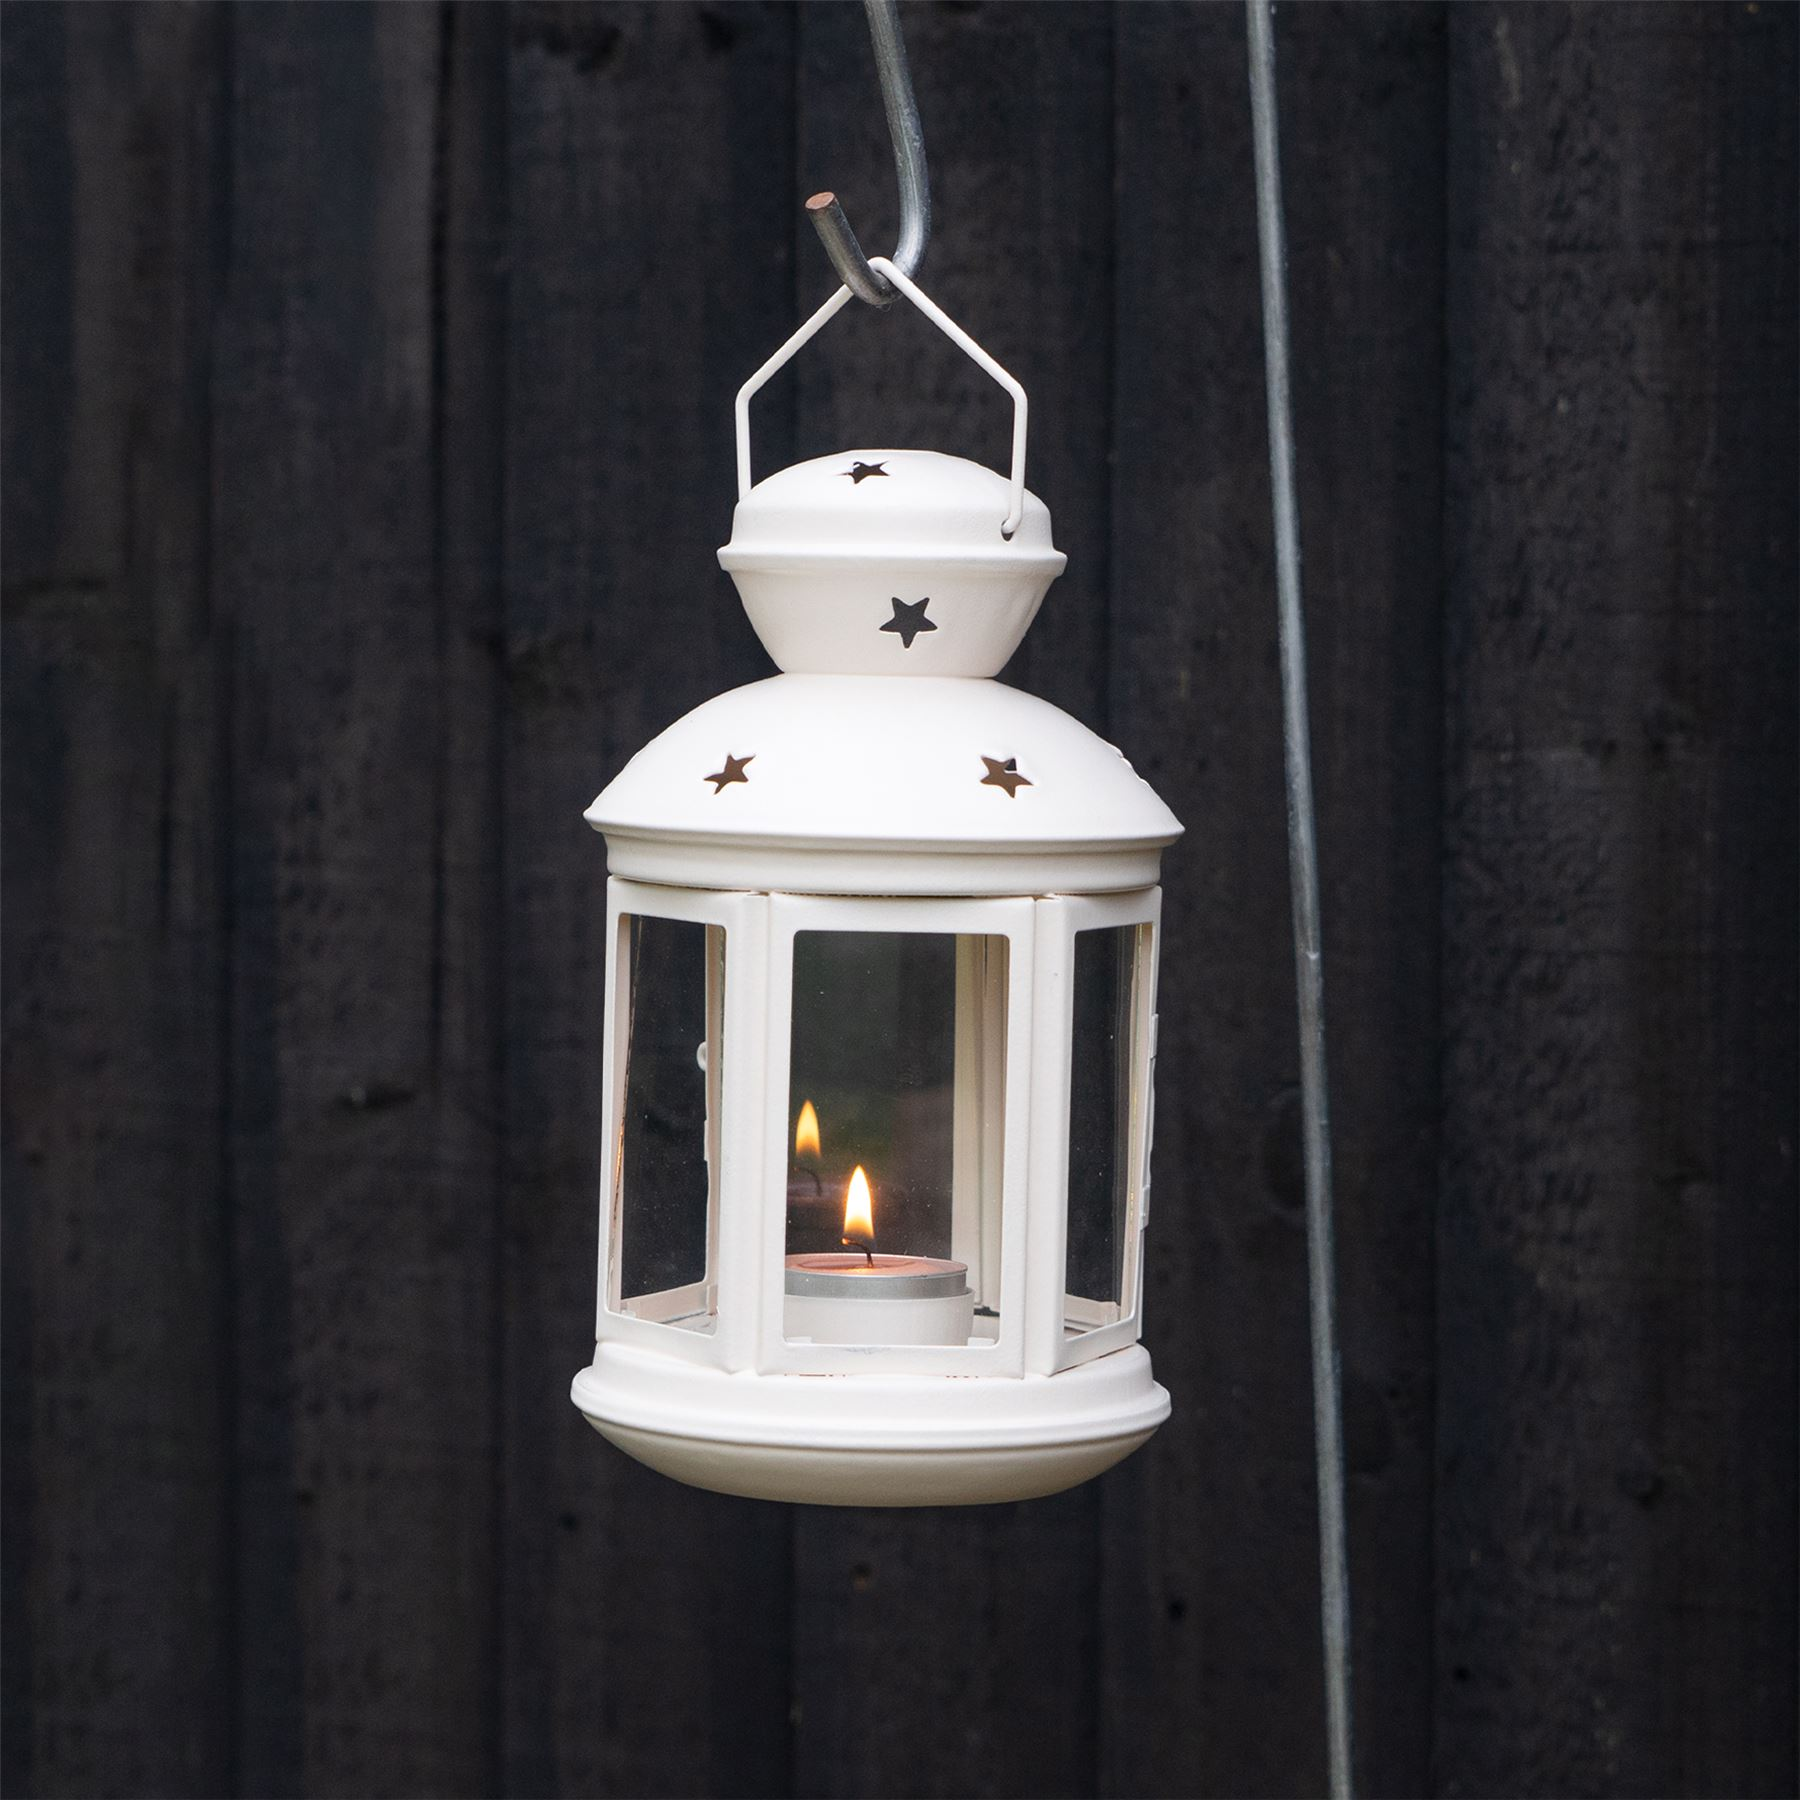 Metal-Candle-Lanterns-Tealight-Holders-Vintage-French-Moroccan-Style-20cm-x2 thumbnail 16